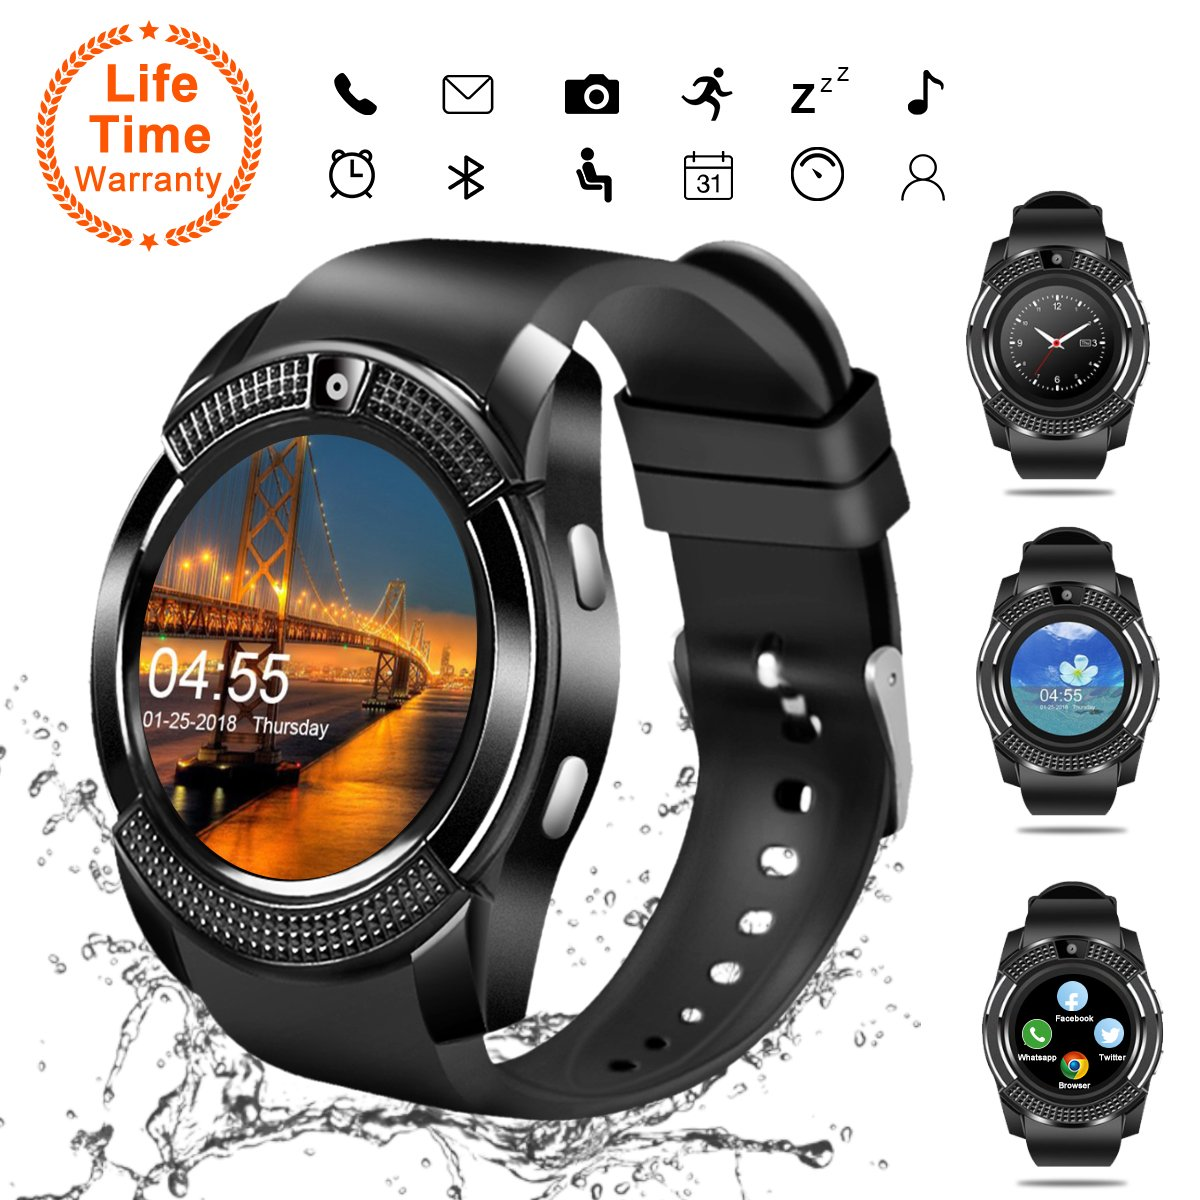 Smart Watch, Bluetooth Smartwatch Touch Screen Wrist Watch with Camera/SIM Card Slot,Waterproof Smart Watch Sports Fitness Tracker Android Phone Watch Compatible with Android Phones Samsung Huawei by Topffy